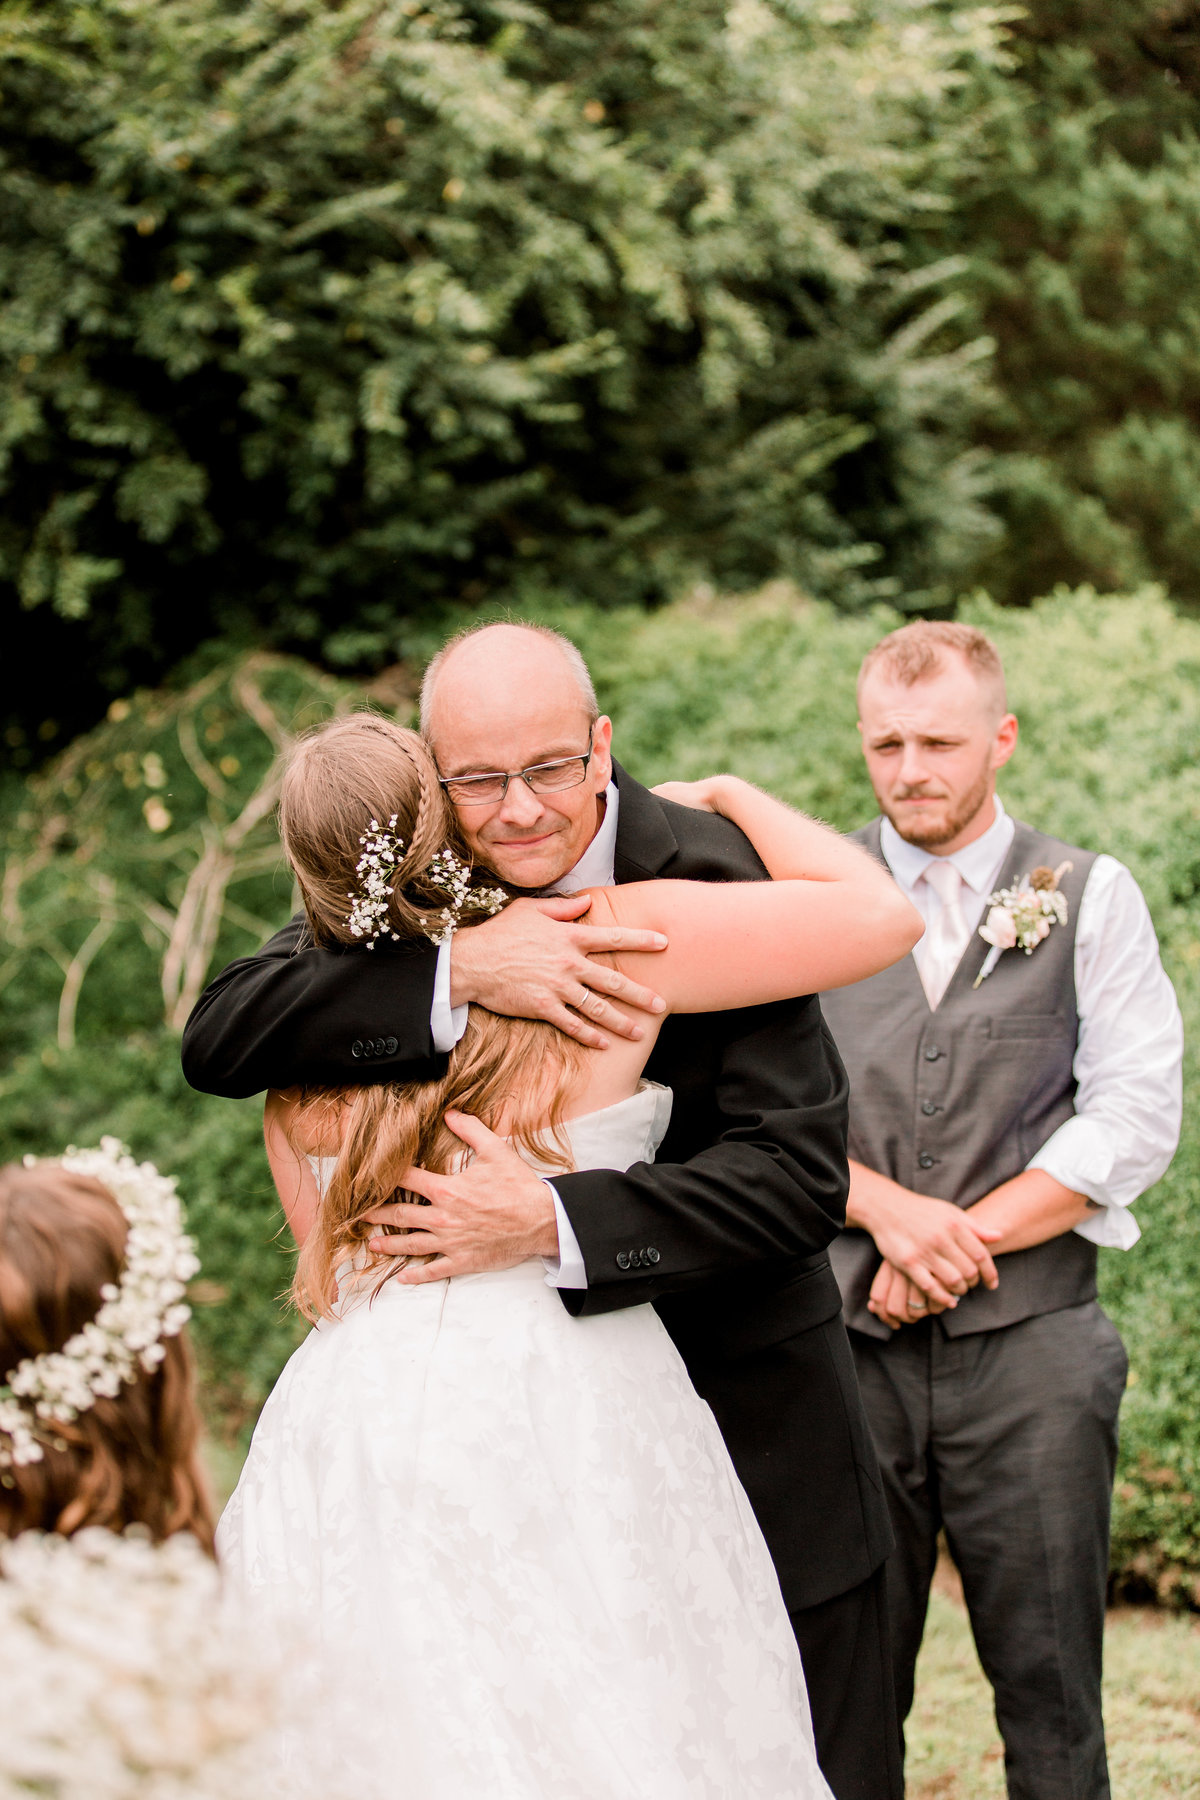 sharonelizabethphotography-surryvirginiawedding-rusticbackyardwedding-richmondvirginiaoutdoorwedding2251